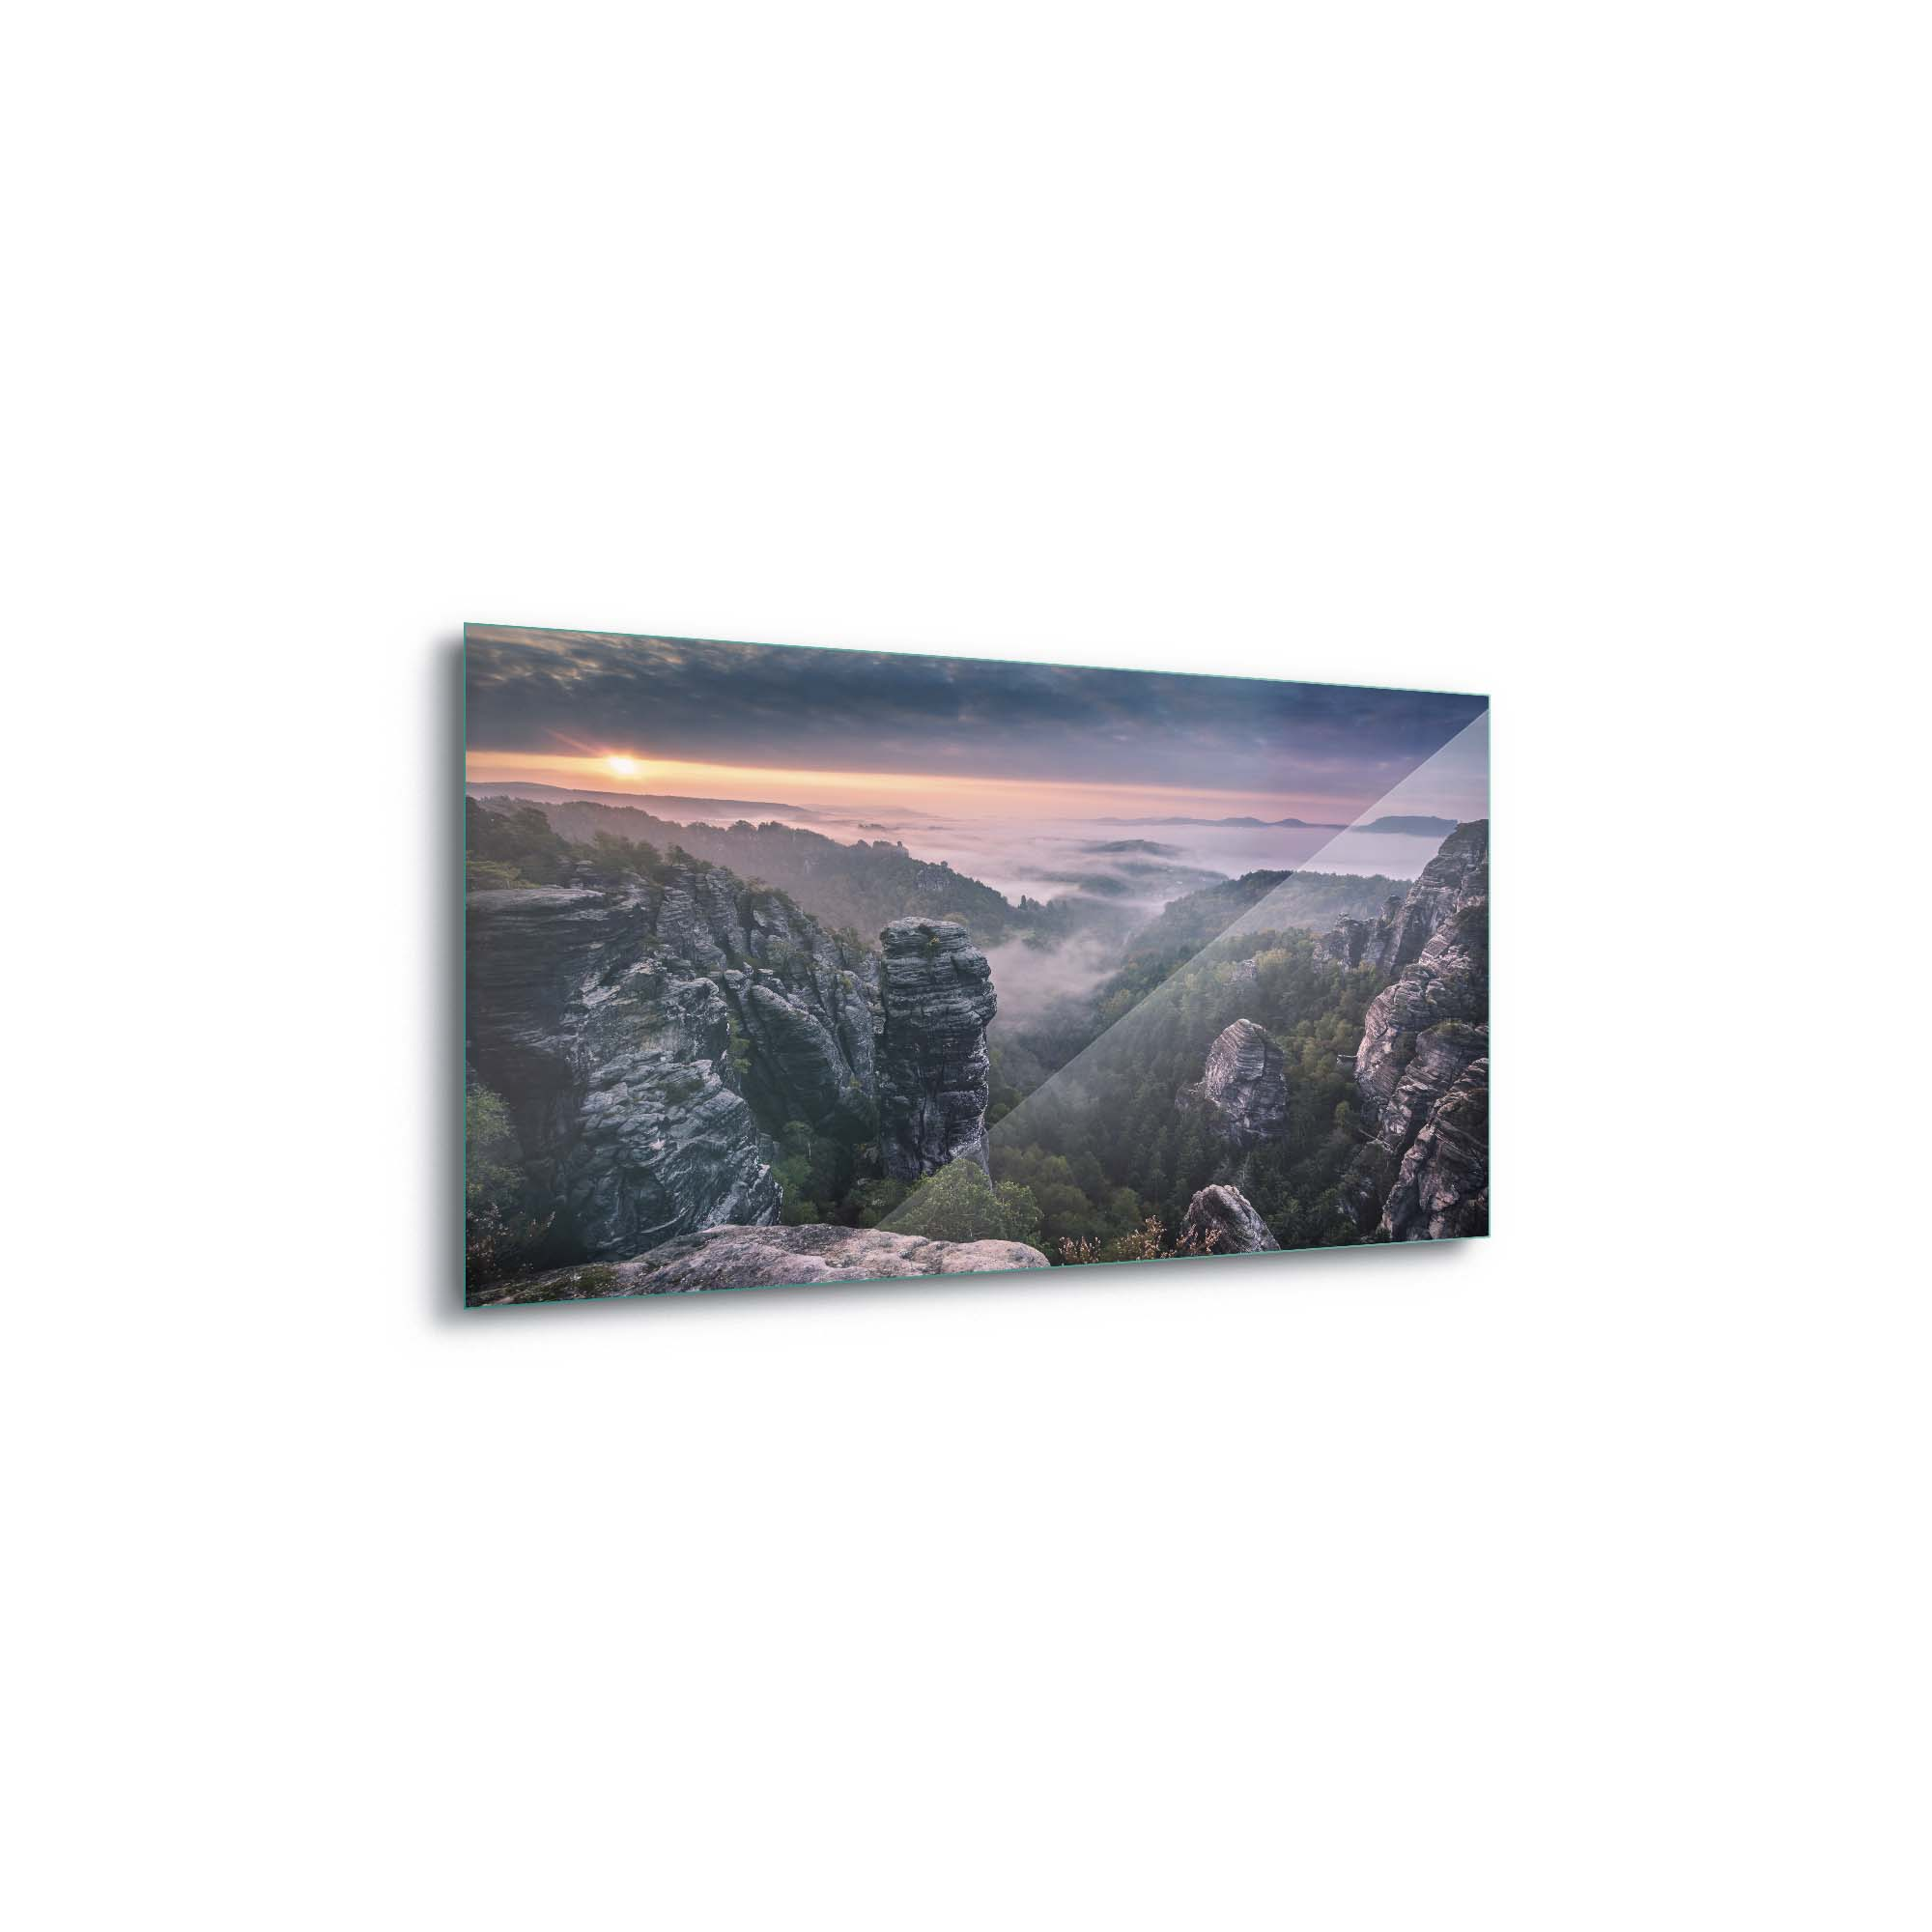 Glass printed Sunset at The Mountains